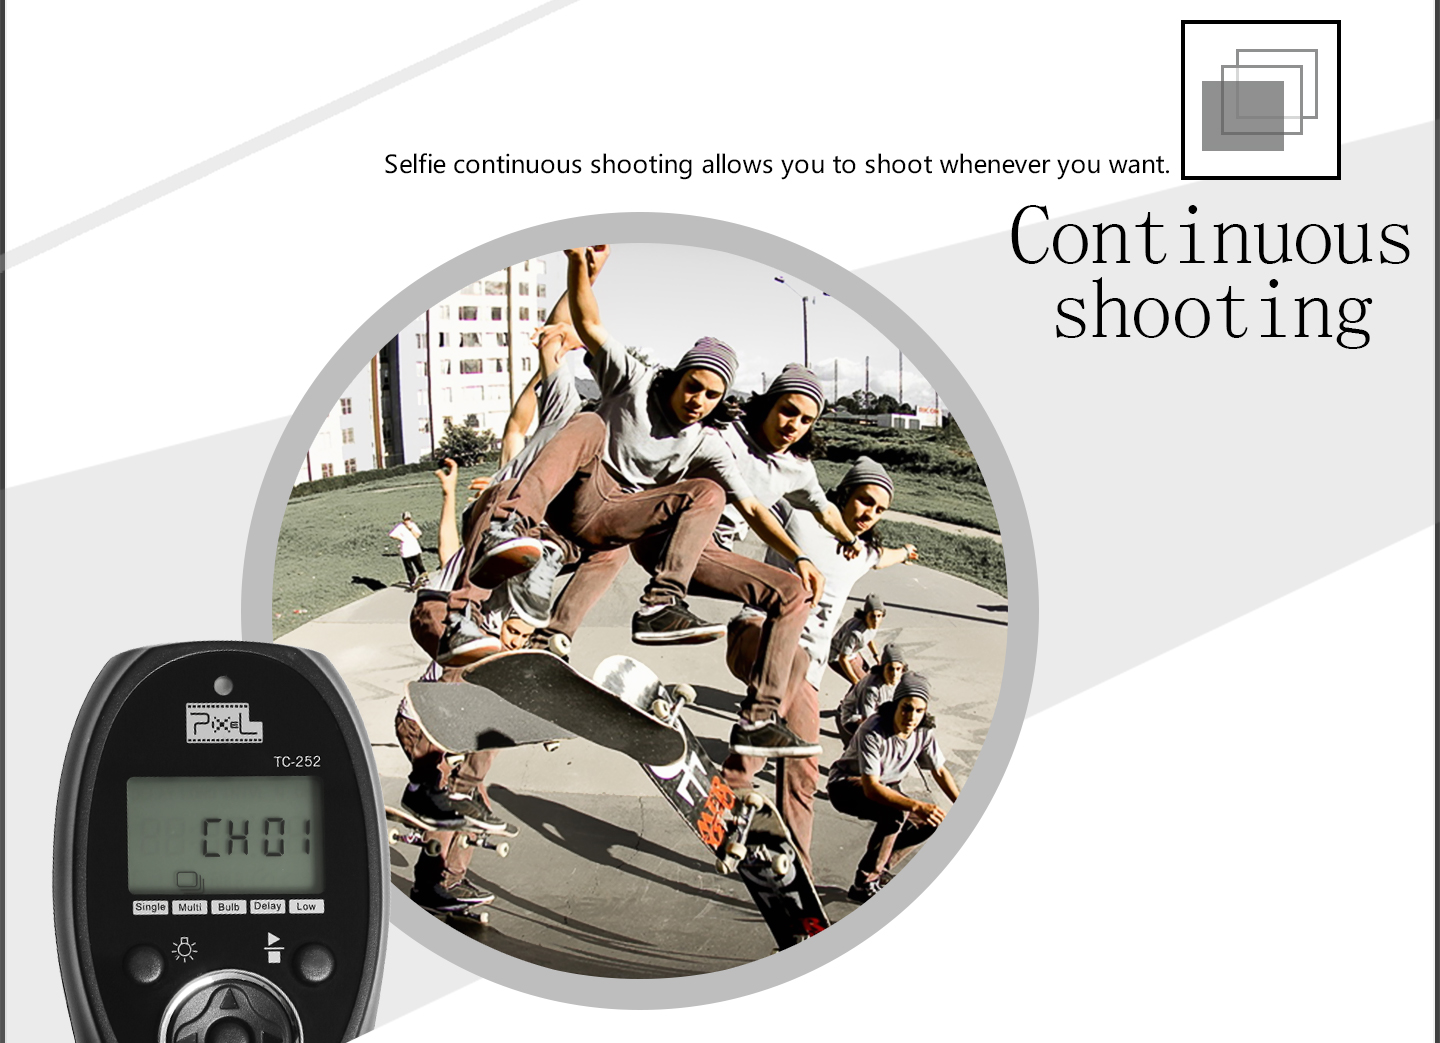 Continuous shooting